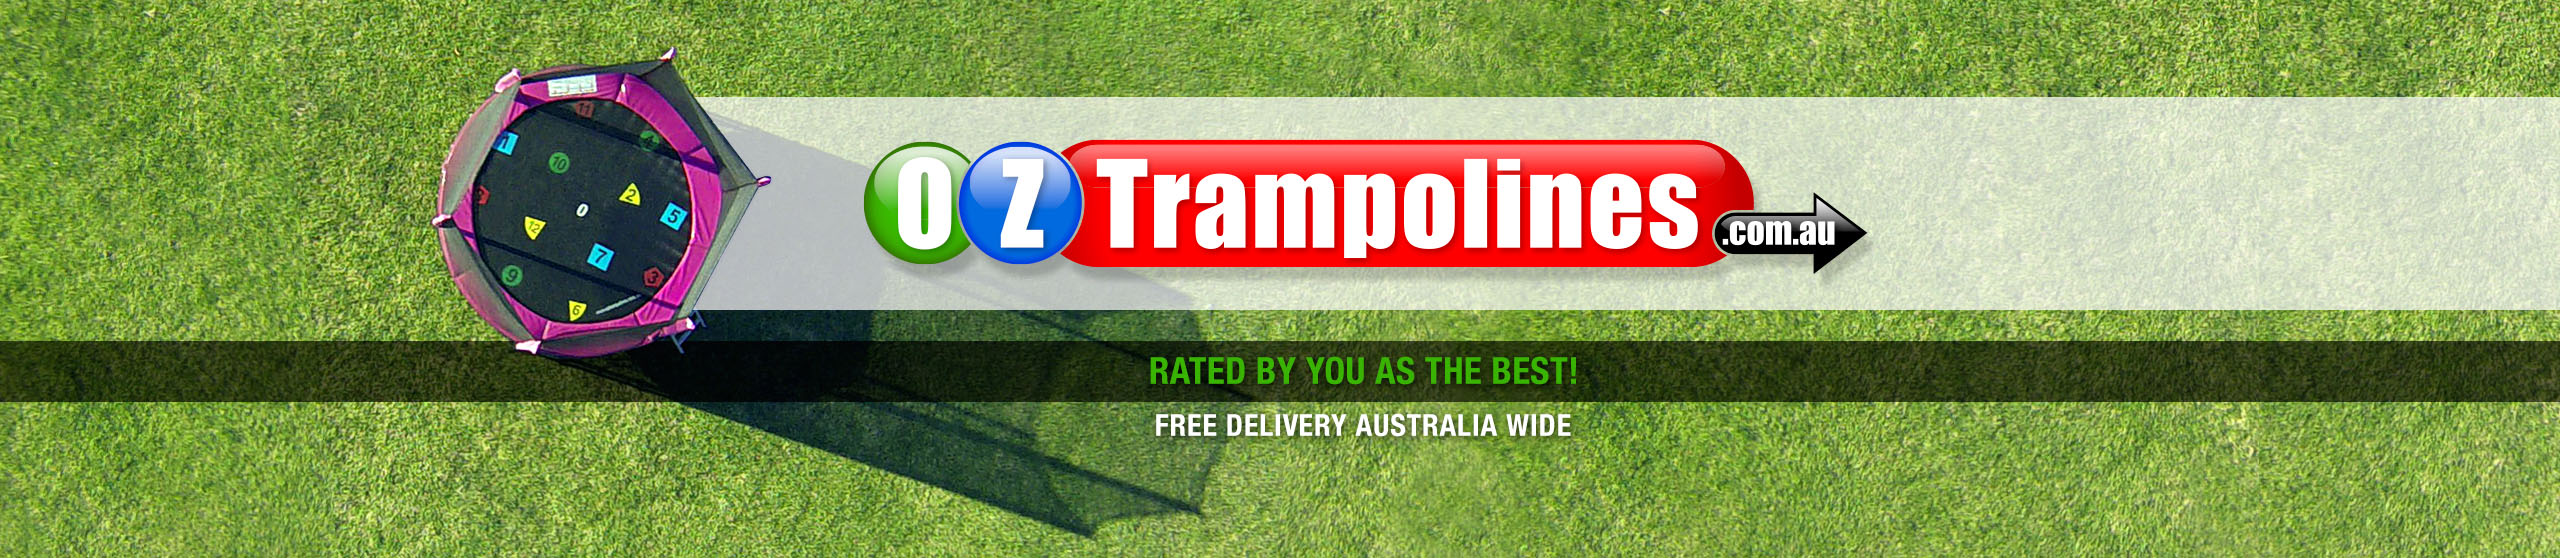 Oz Trampolines Blog